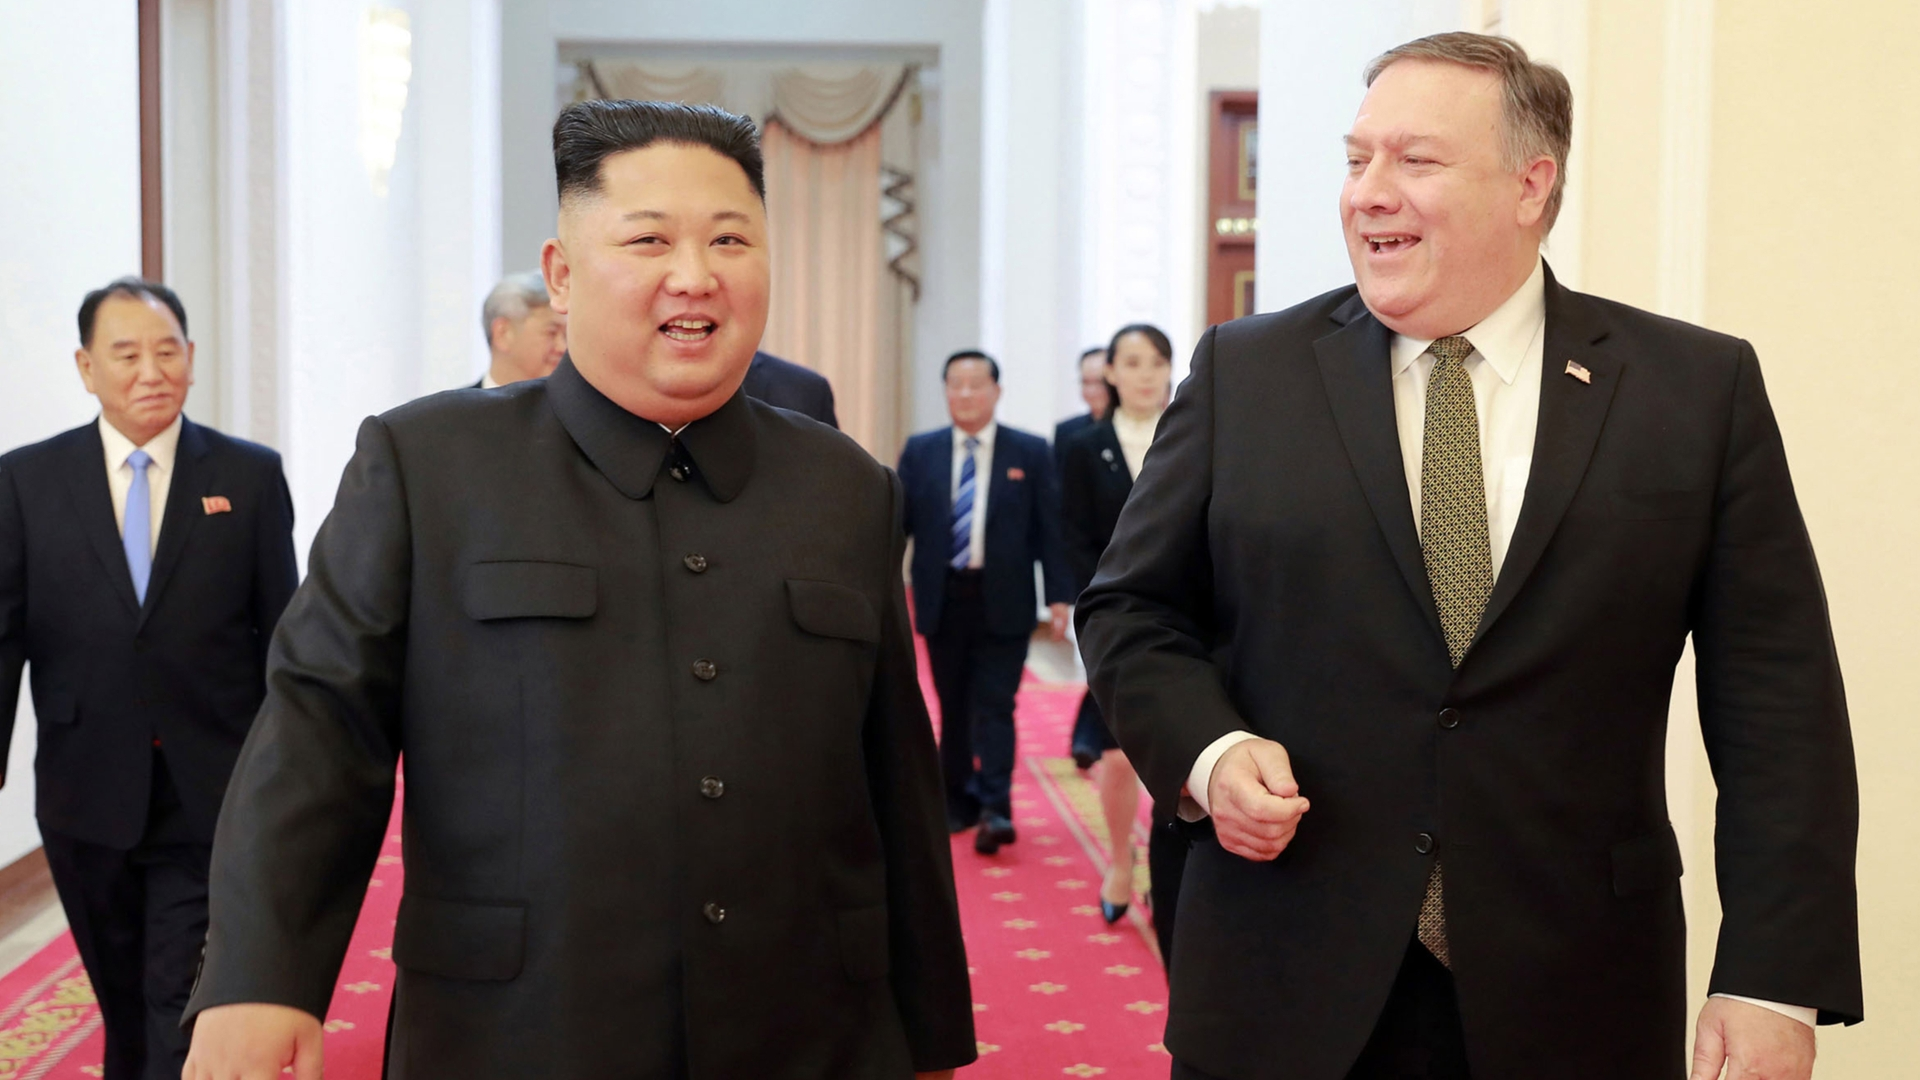 North Korea rejects Pompeo's role in nuclear talks, asks for more 'mature' U.S. envoy